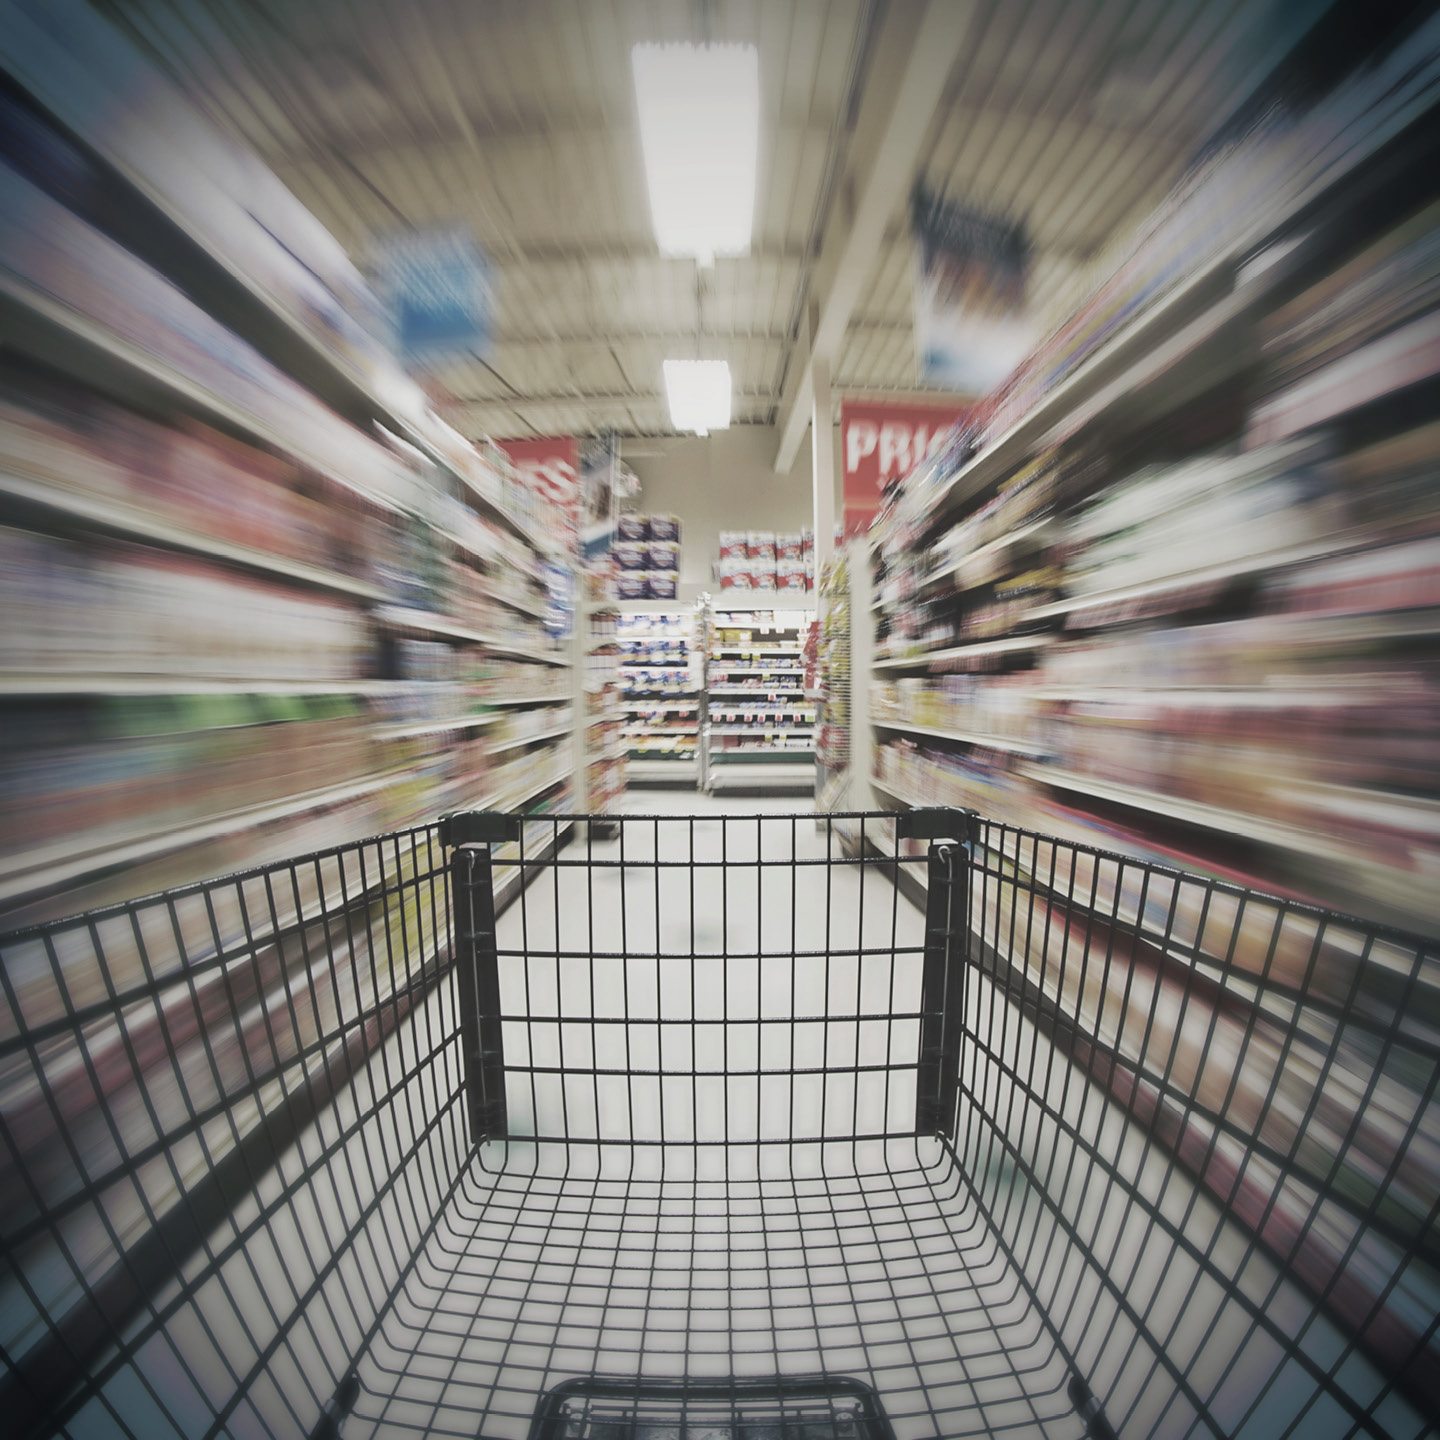 An empty shopping cart being pushed down a grocery store aisle